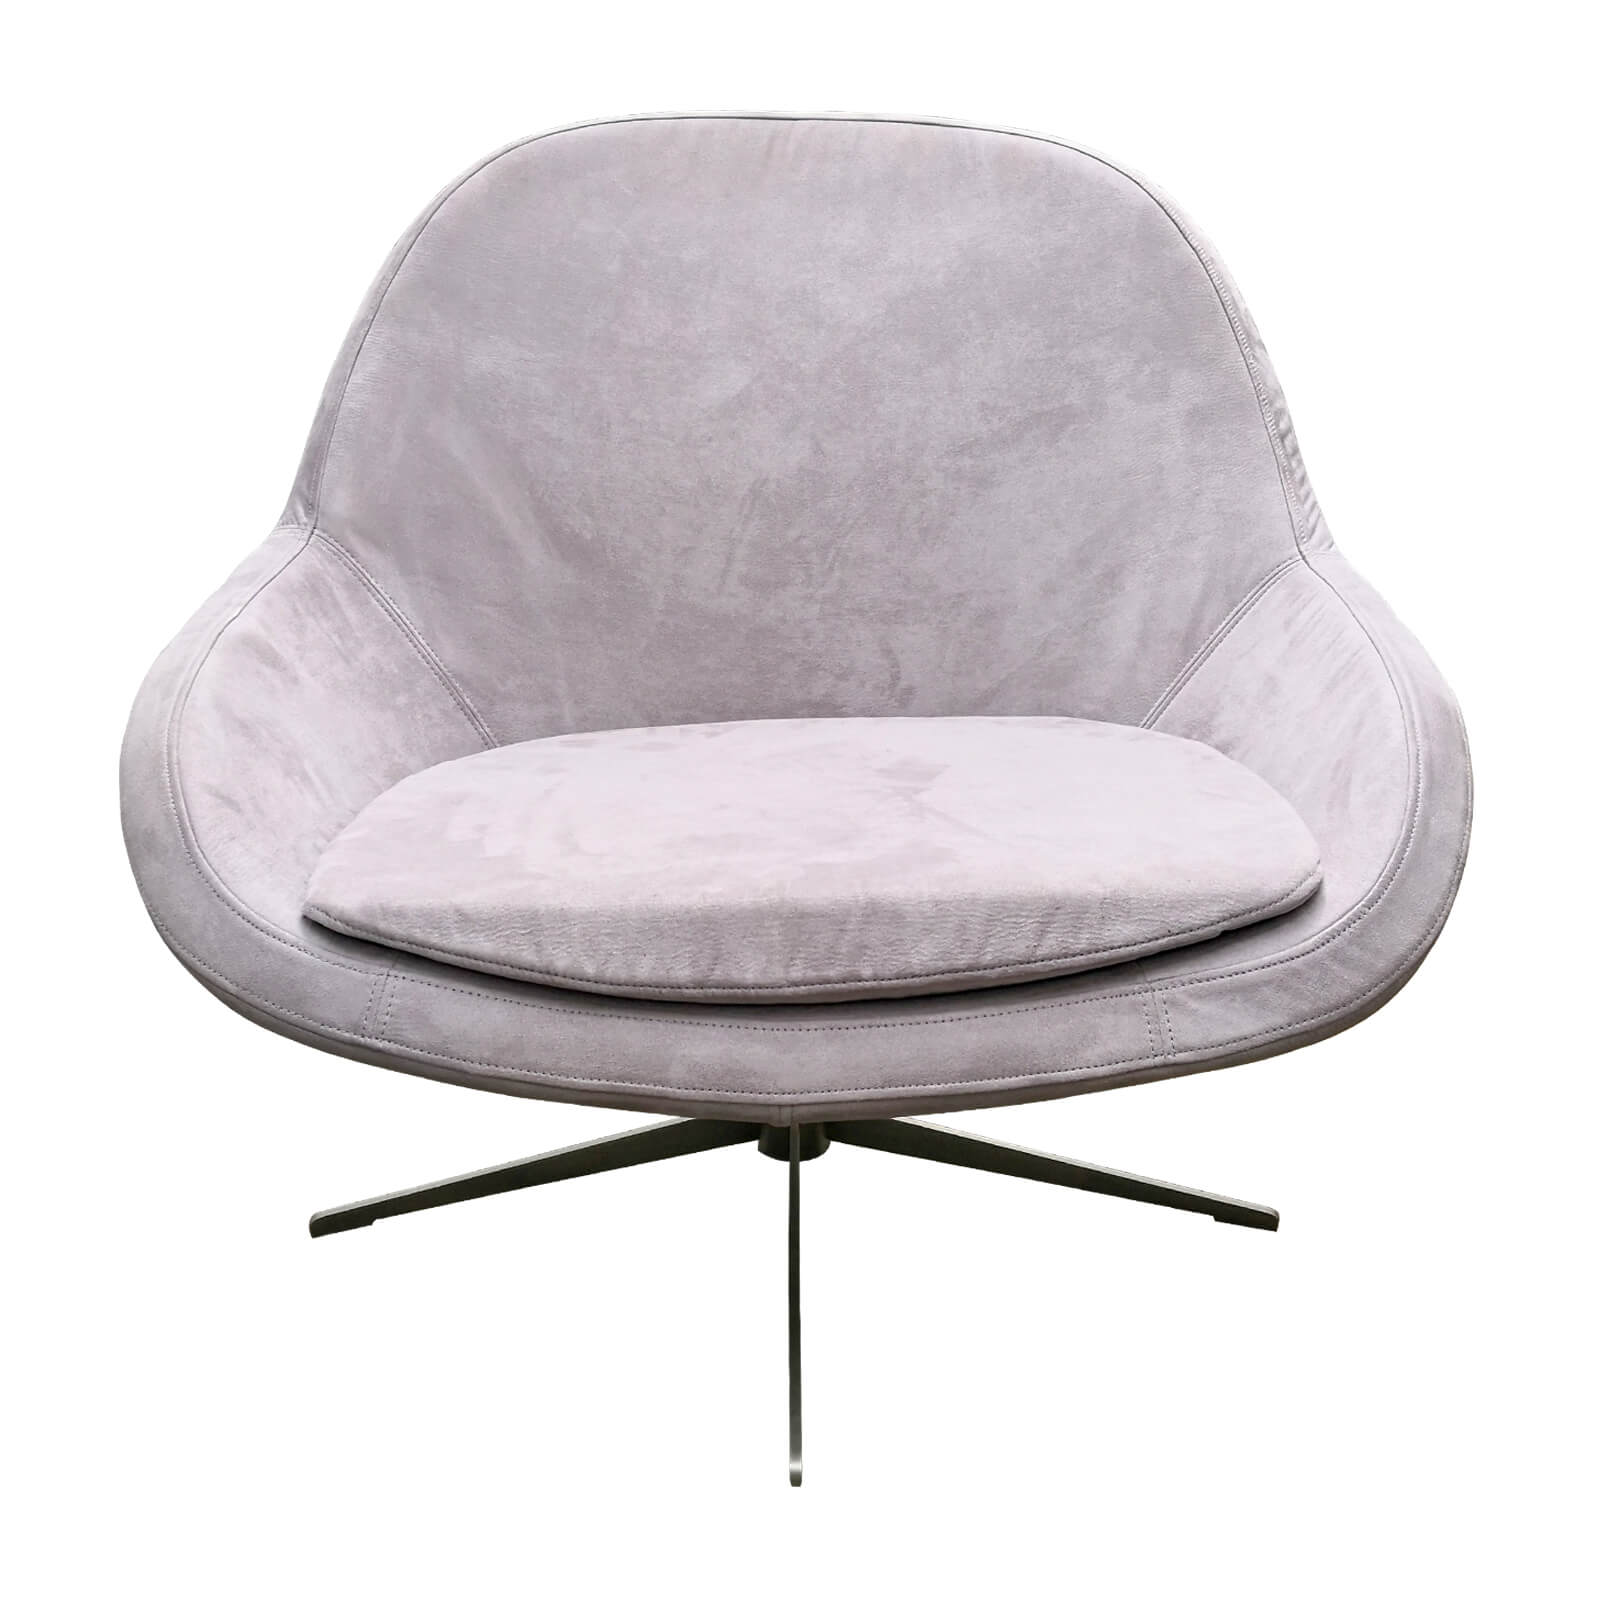 Two Design Lovers Bo Concept Veneto grey occasional swivel chair